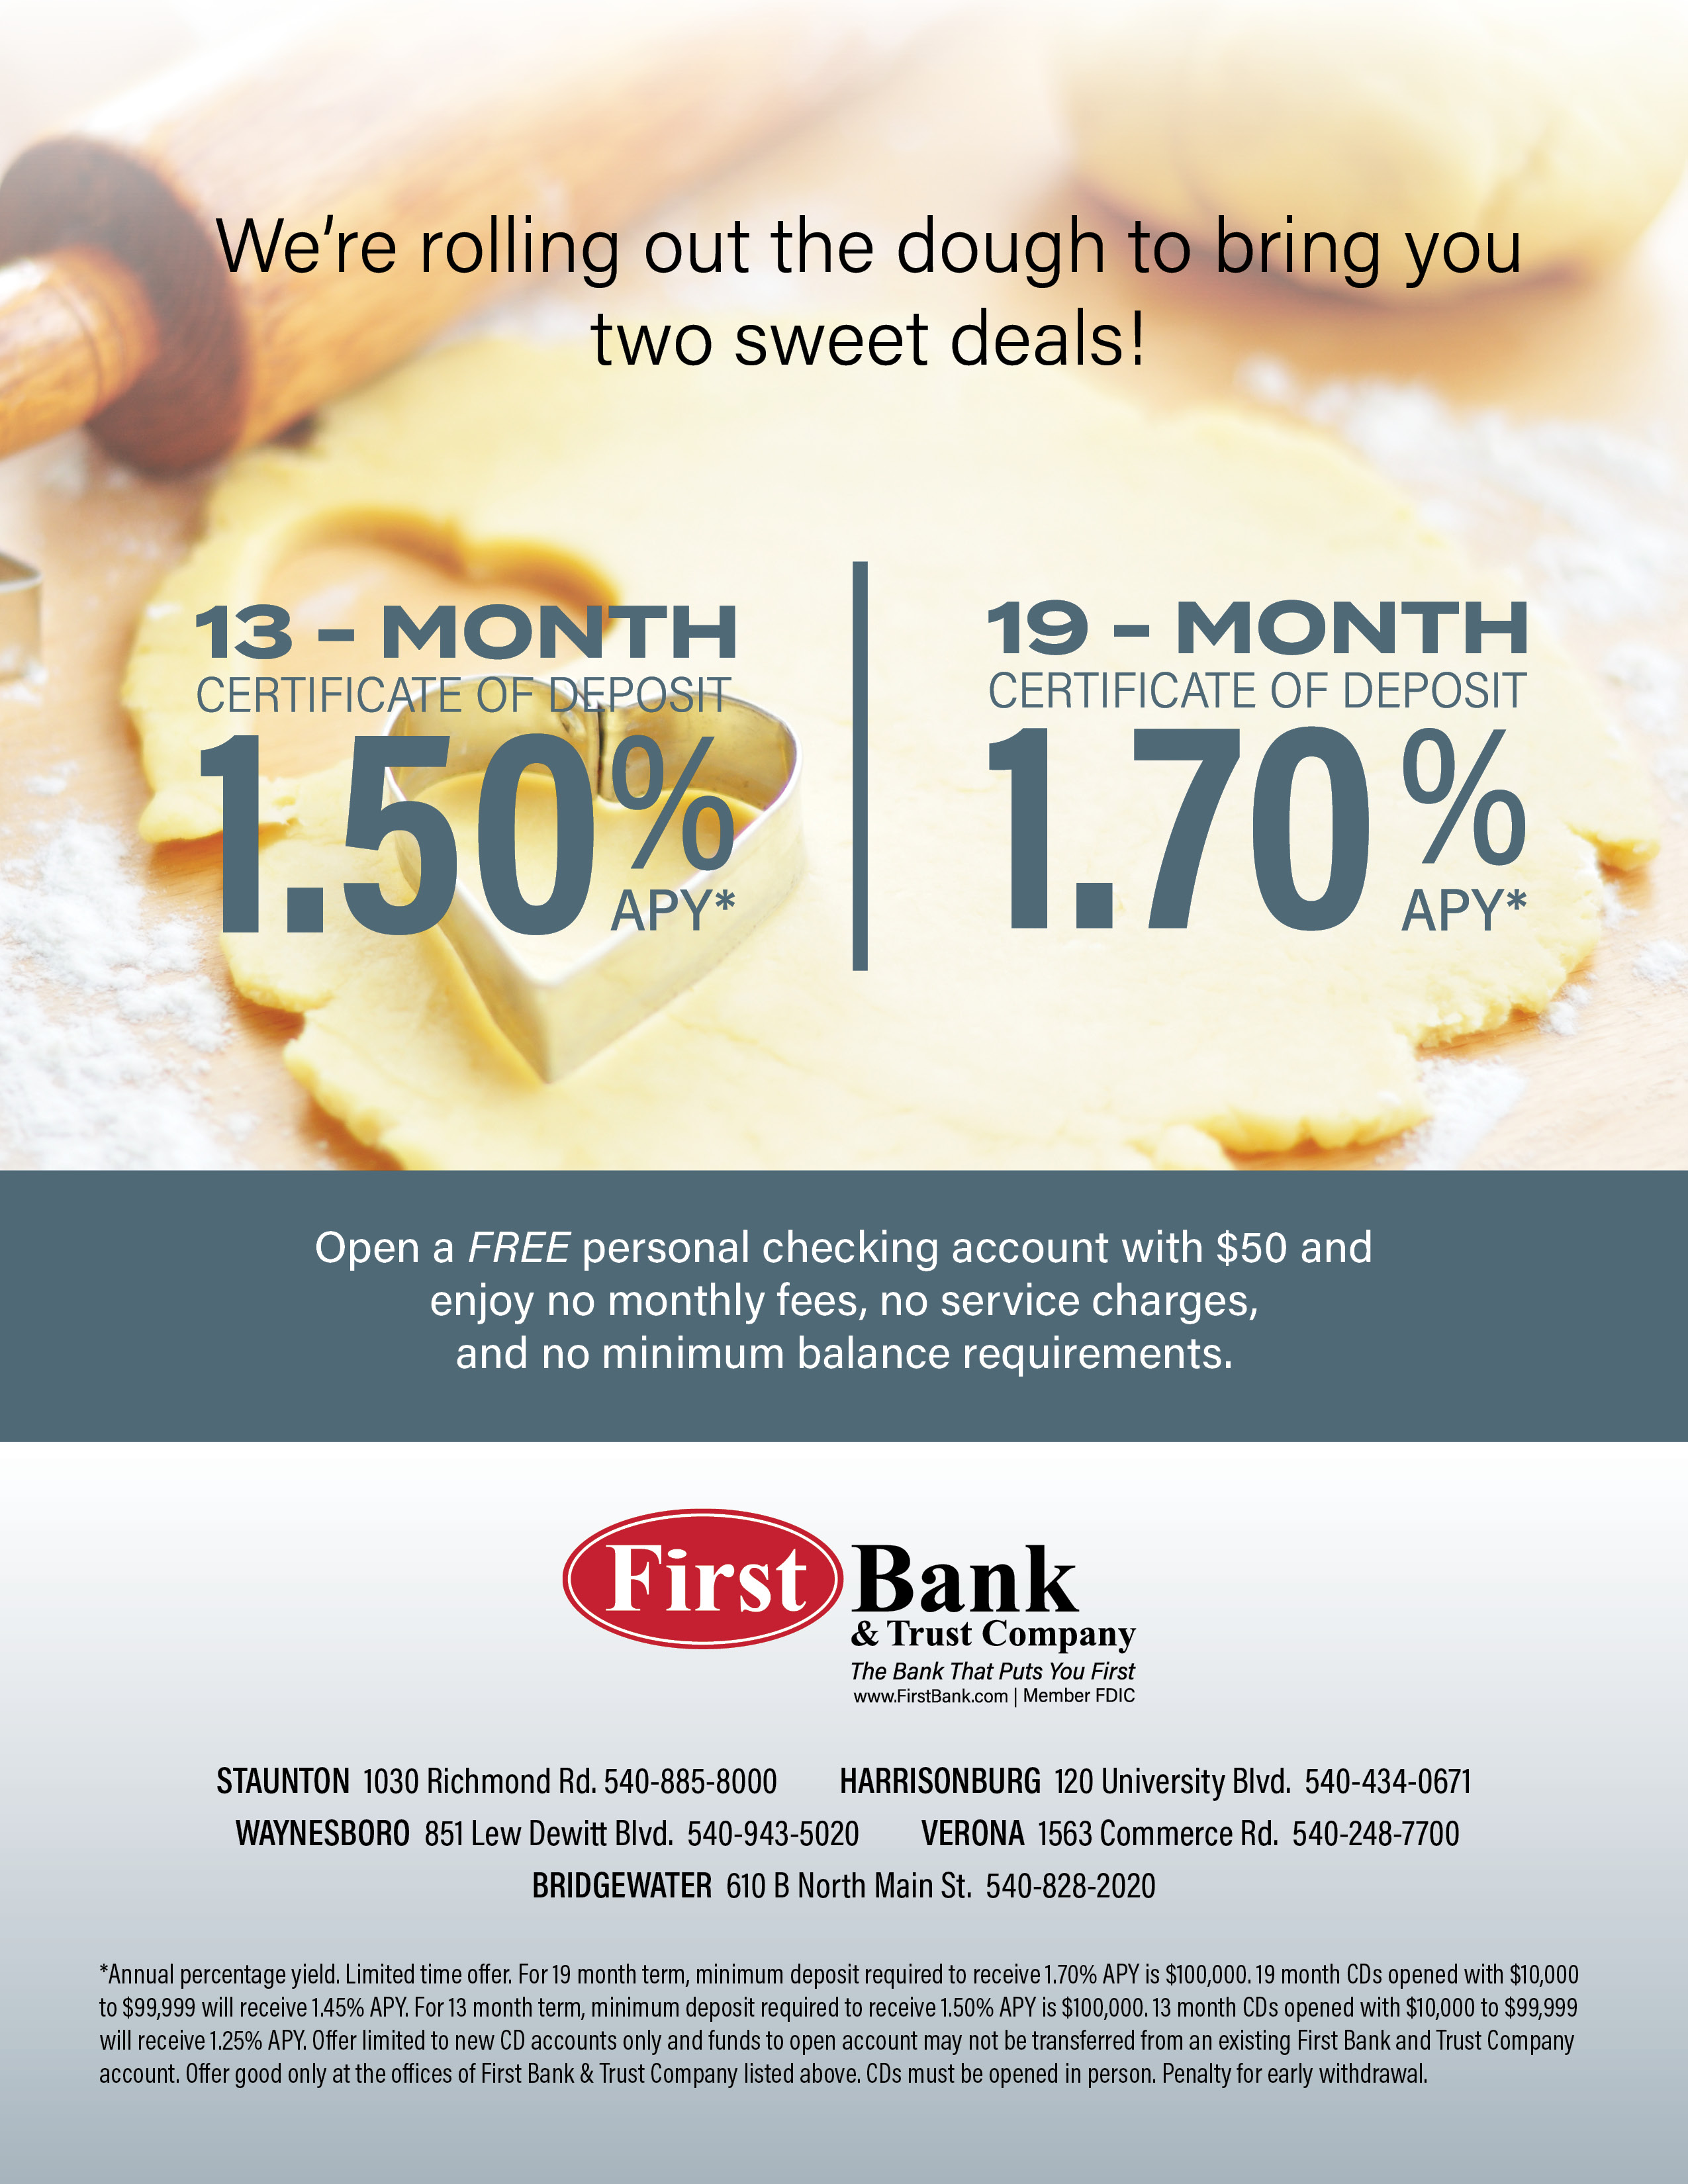 Two Sweet Deals First Bank And Trust Company